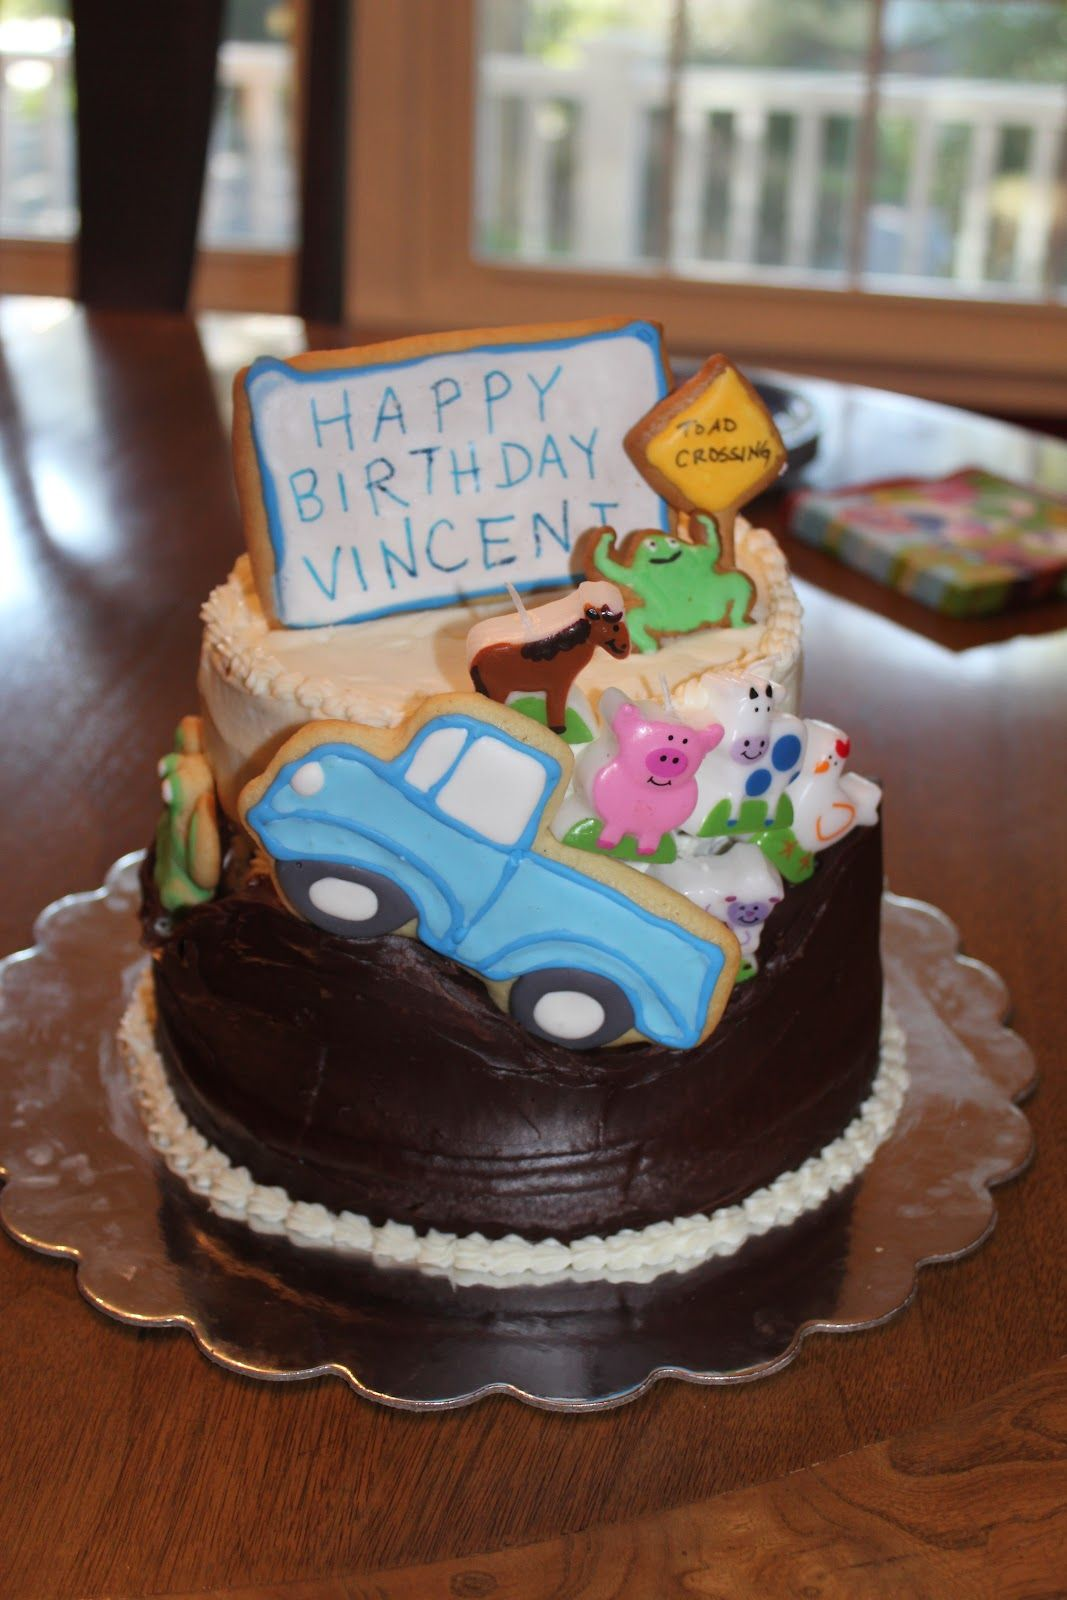 Little Blue Truck party cake I like how the characters are made